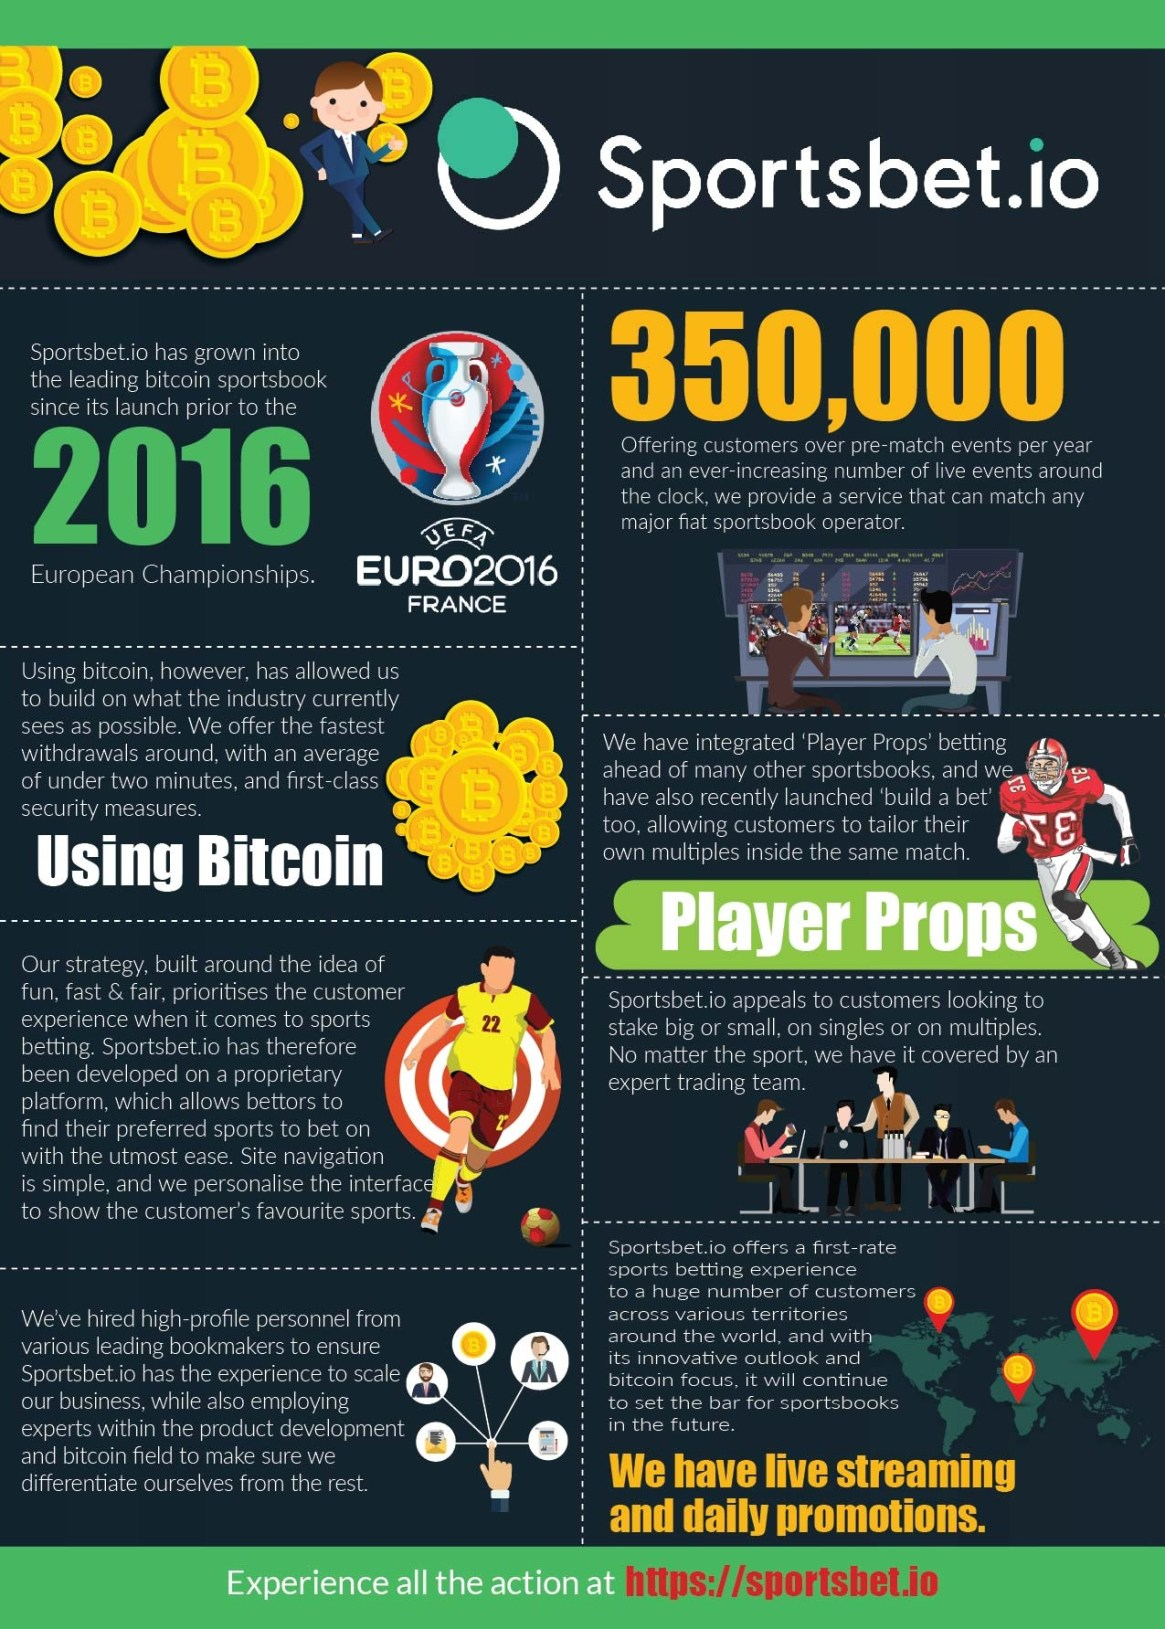 Sports betting with Bitcoins on Sportsbet.io